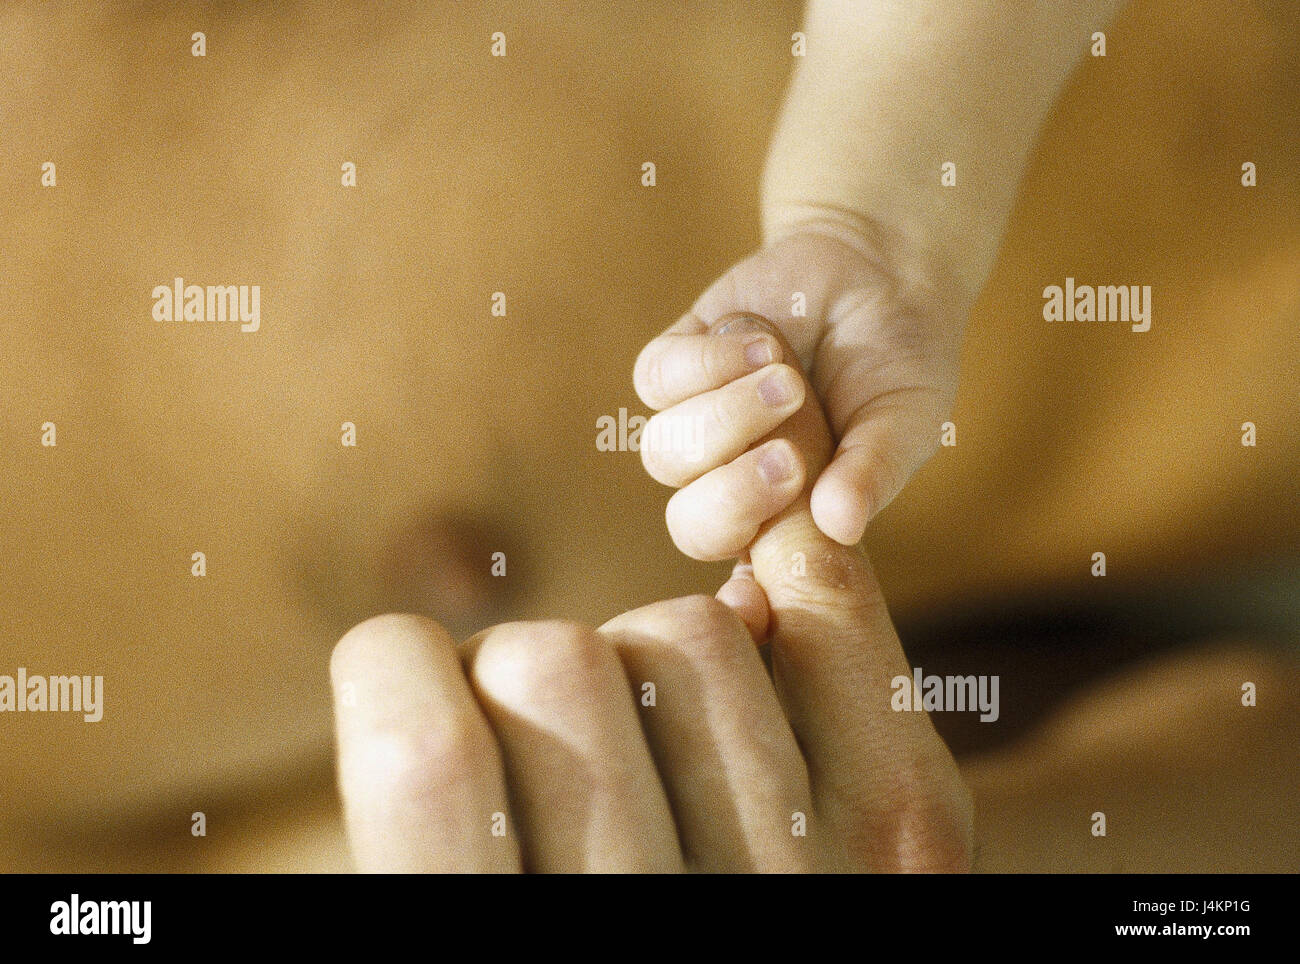 Father, baby, detail, hands, touch very closely, man, upper part of the body freely, shell, child, finger, give - Stock Image